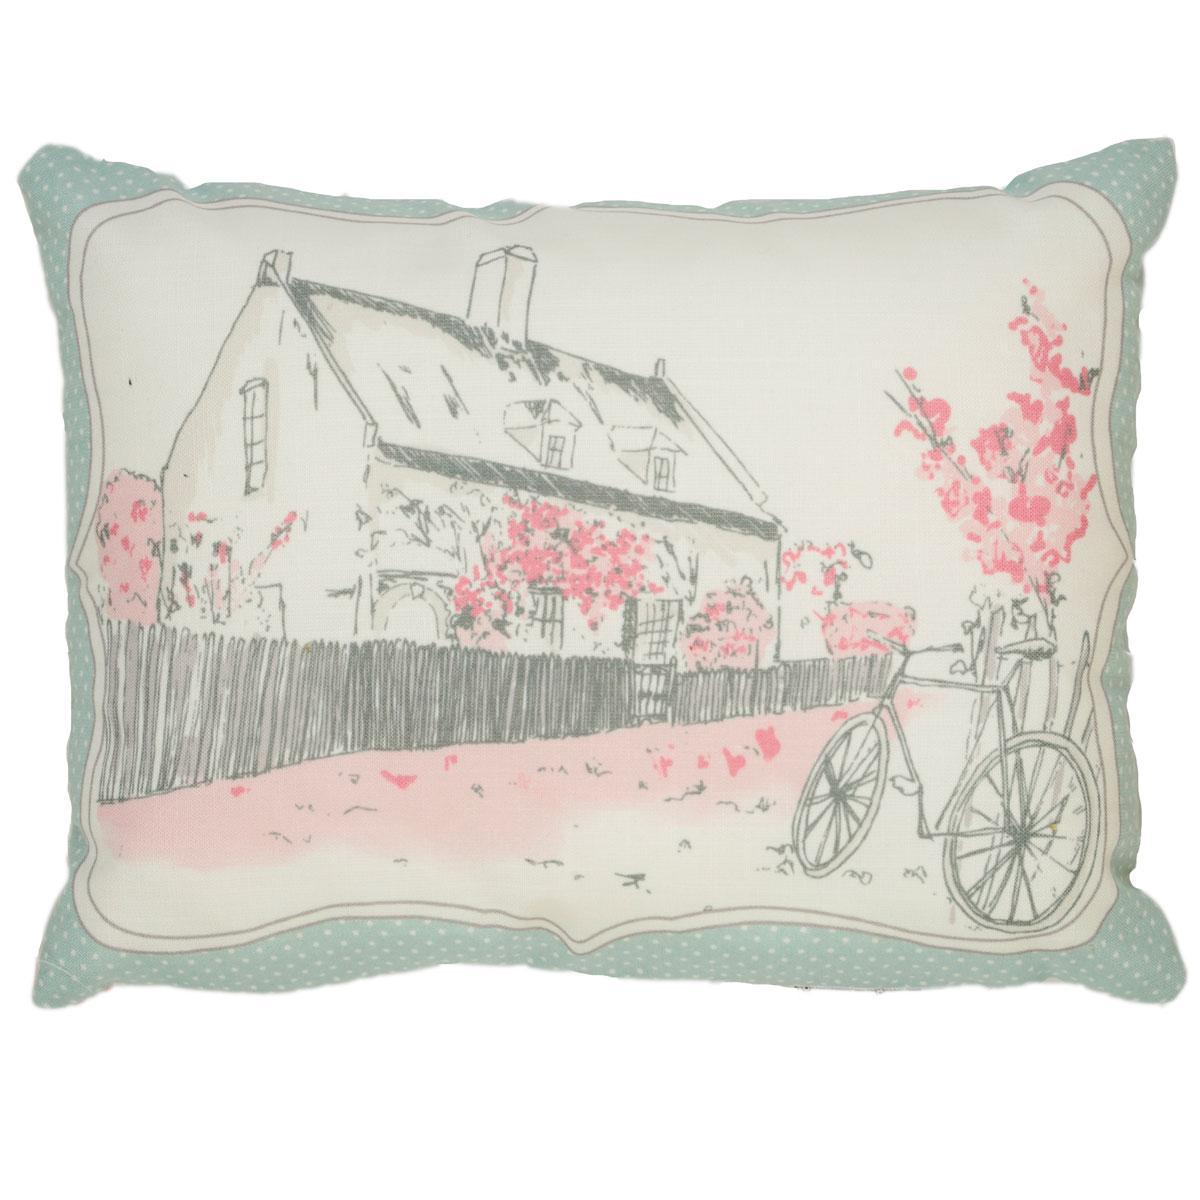 J Rosenthal Cushions And Throws Patsy Boudoir Cushion Filled Rose Picture